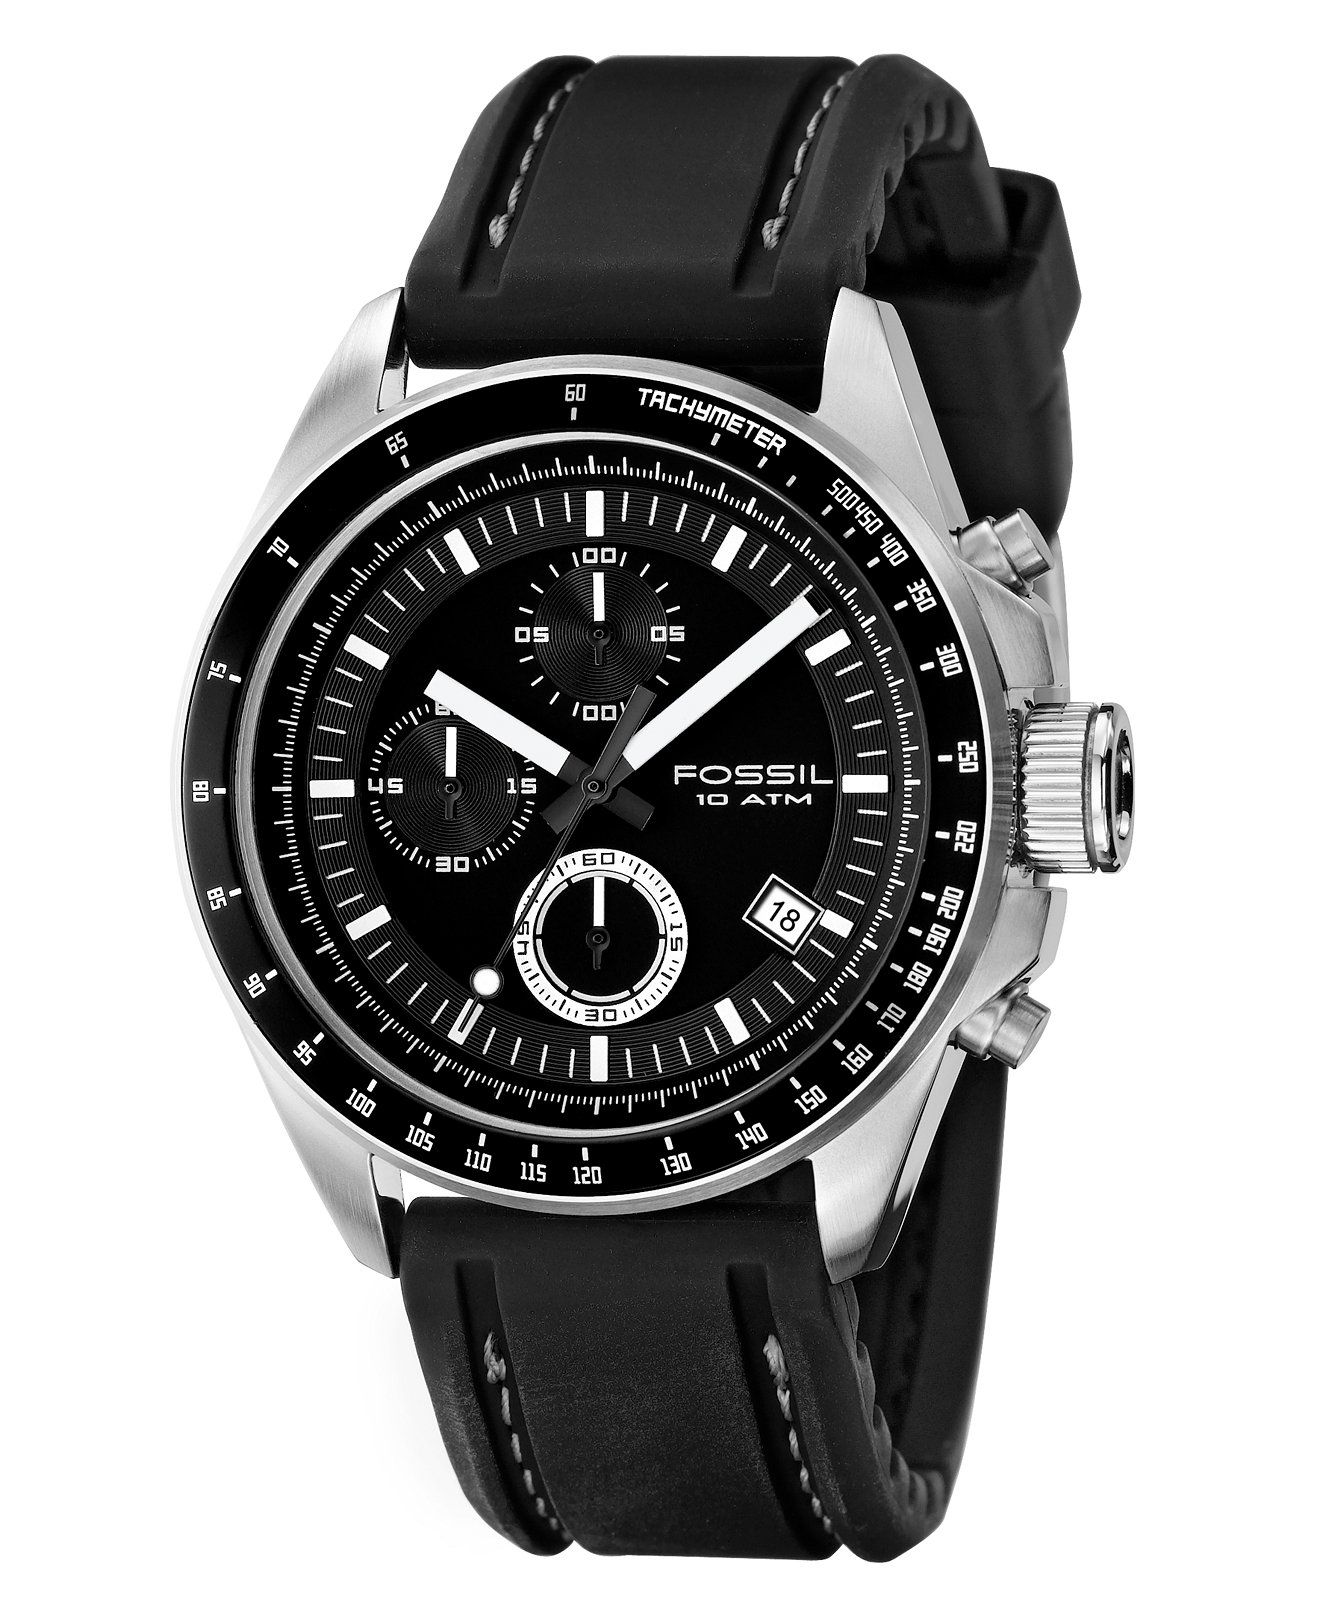 Fossil Men's Chronograph Decker Black Silicone Strap Watch 44mm CH2573 - Watches - Jewelry & Watches - Macy's